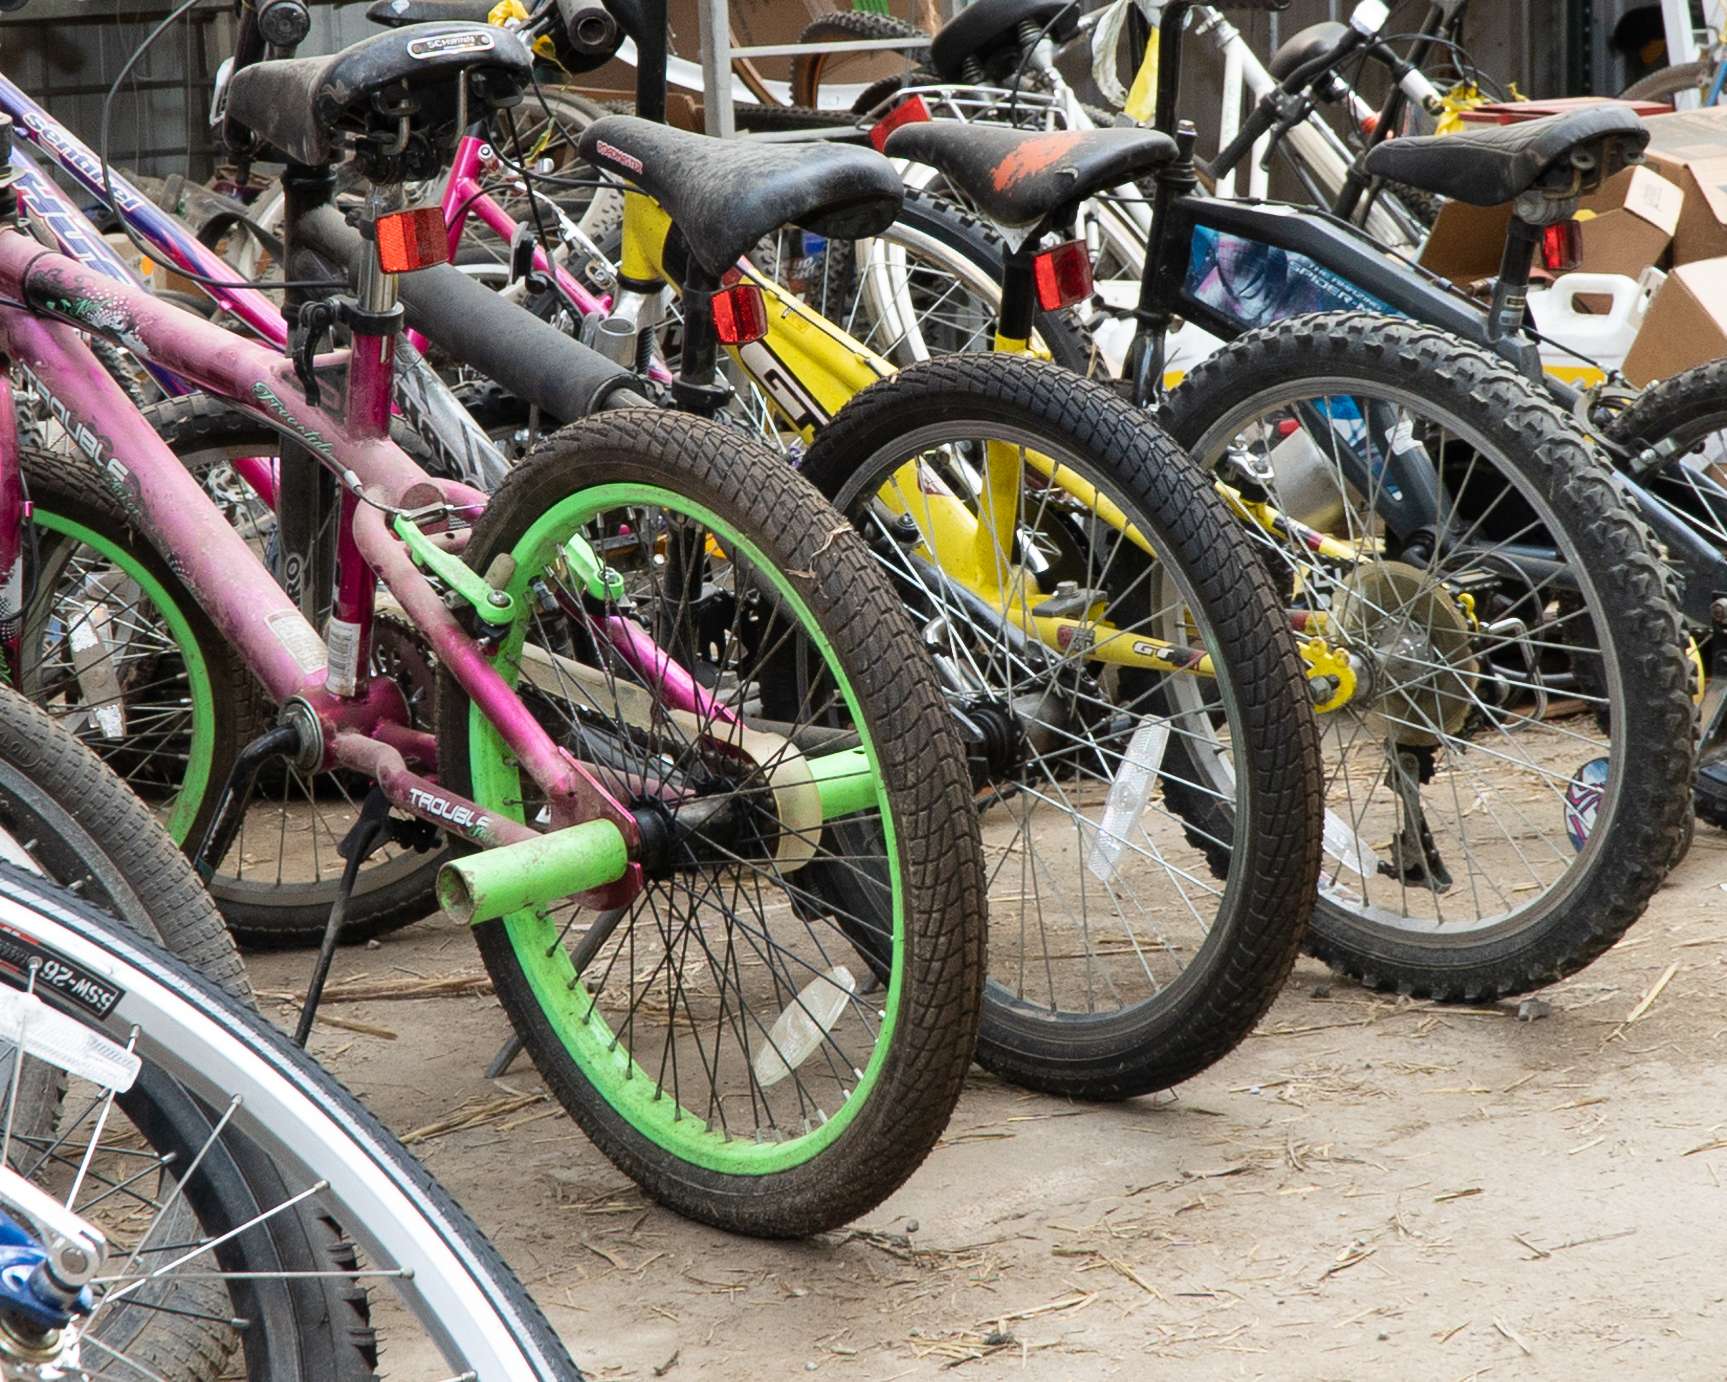 Donated bicycles at Bicycle Recycle